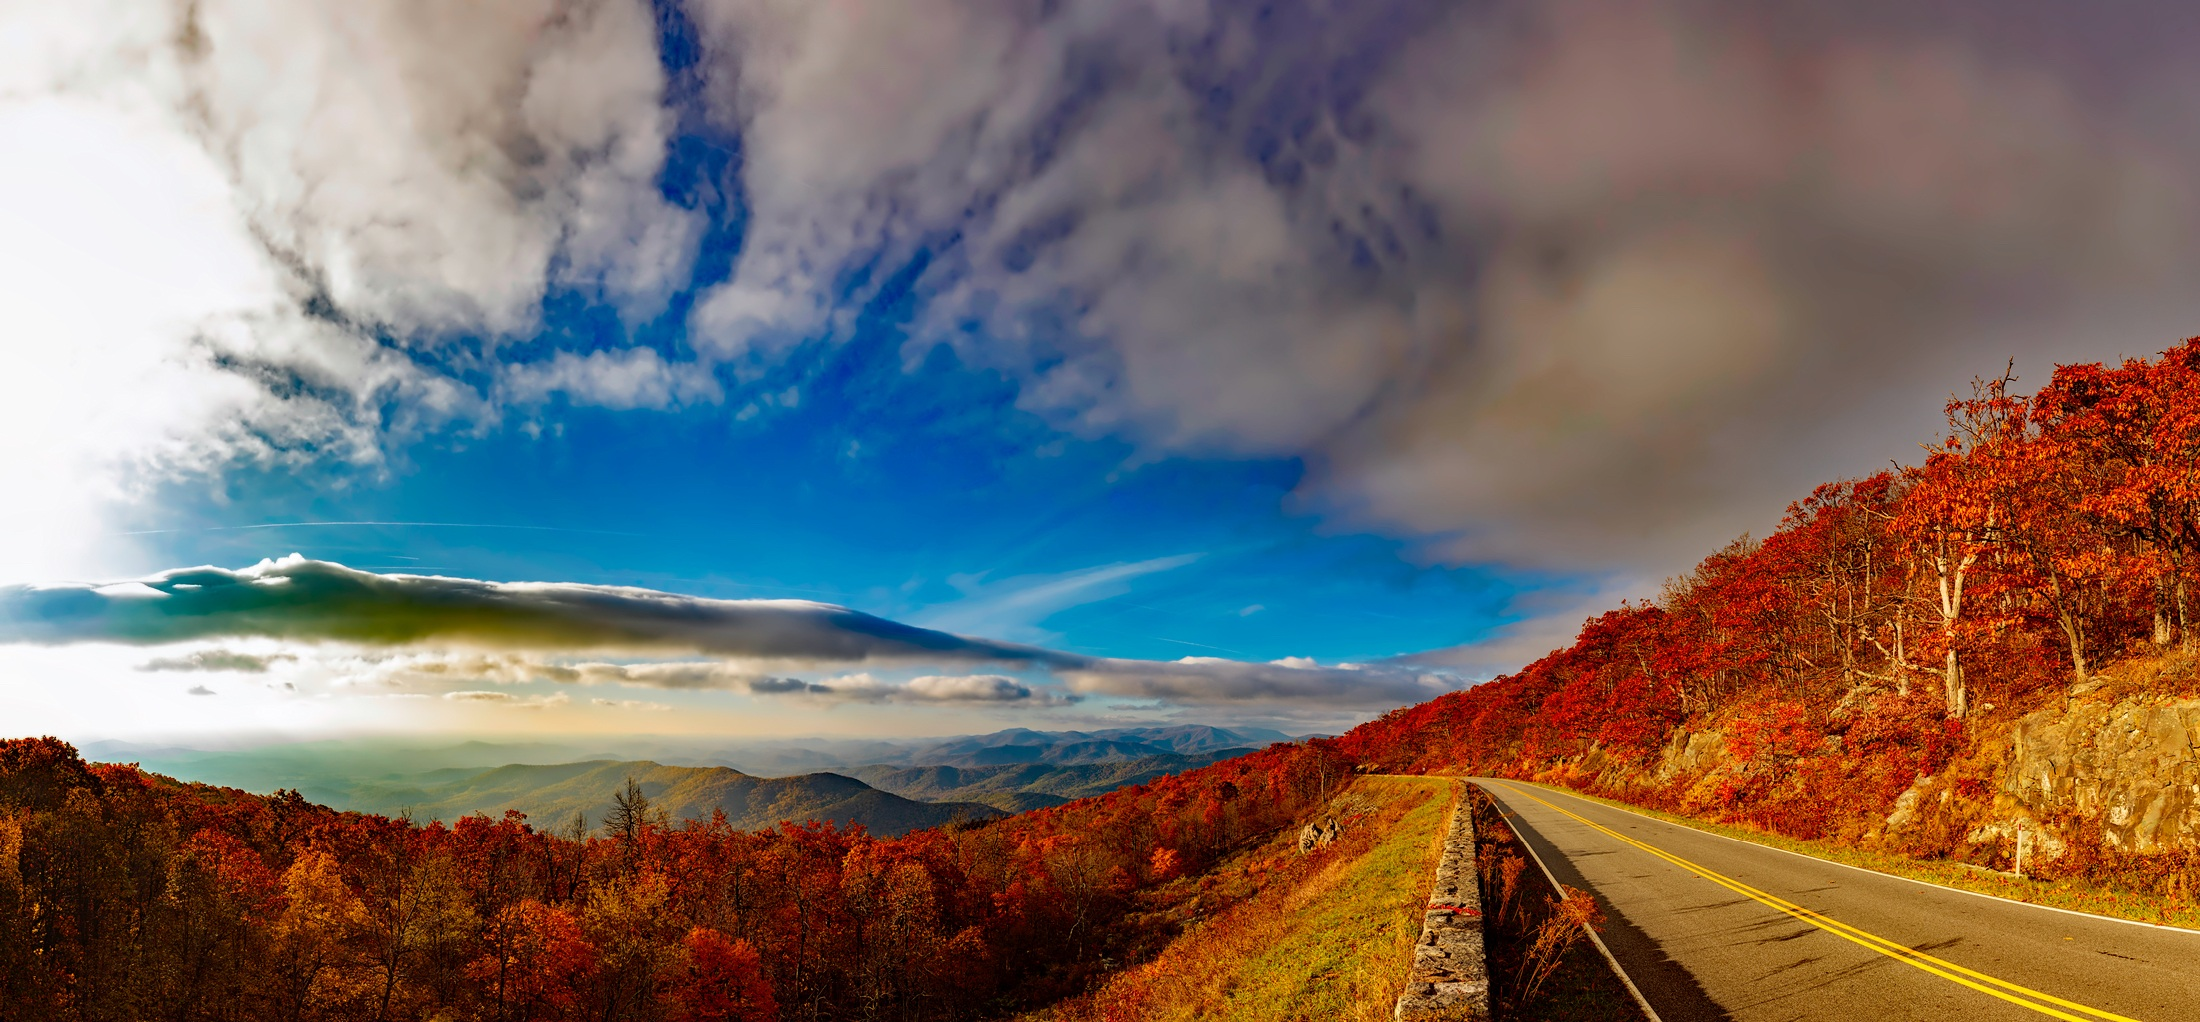 A picture of a road along the Blue Ridge Mountains by 12019 on Pixabay